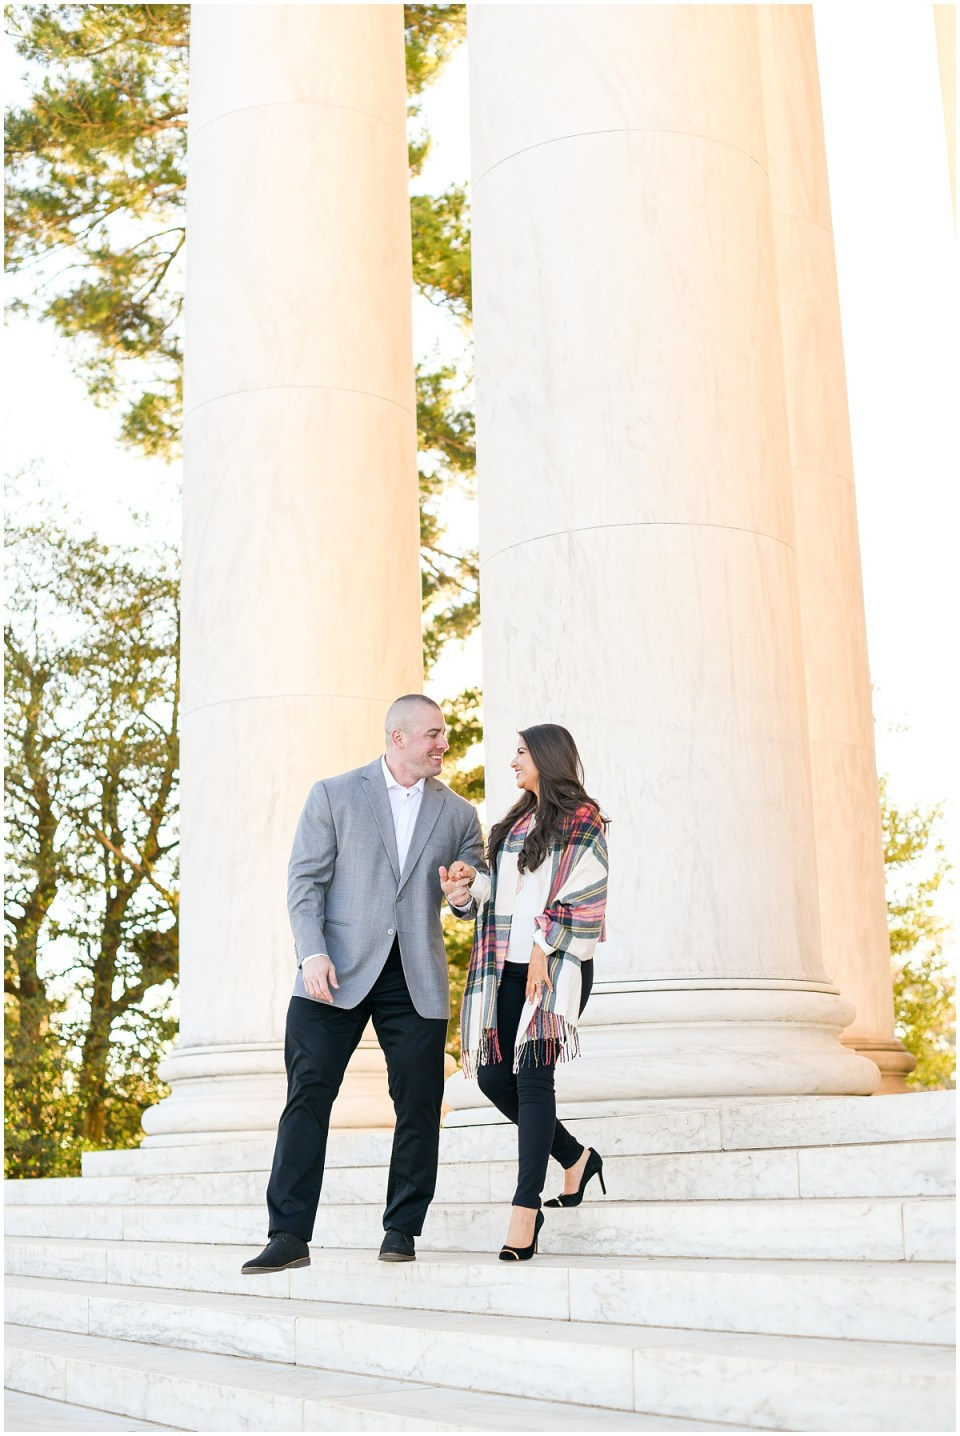 Fall Washington DC engagement photographer at Jefferson Memorial | Ana Isabel Photography